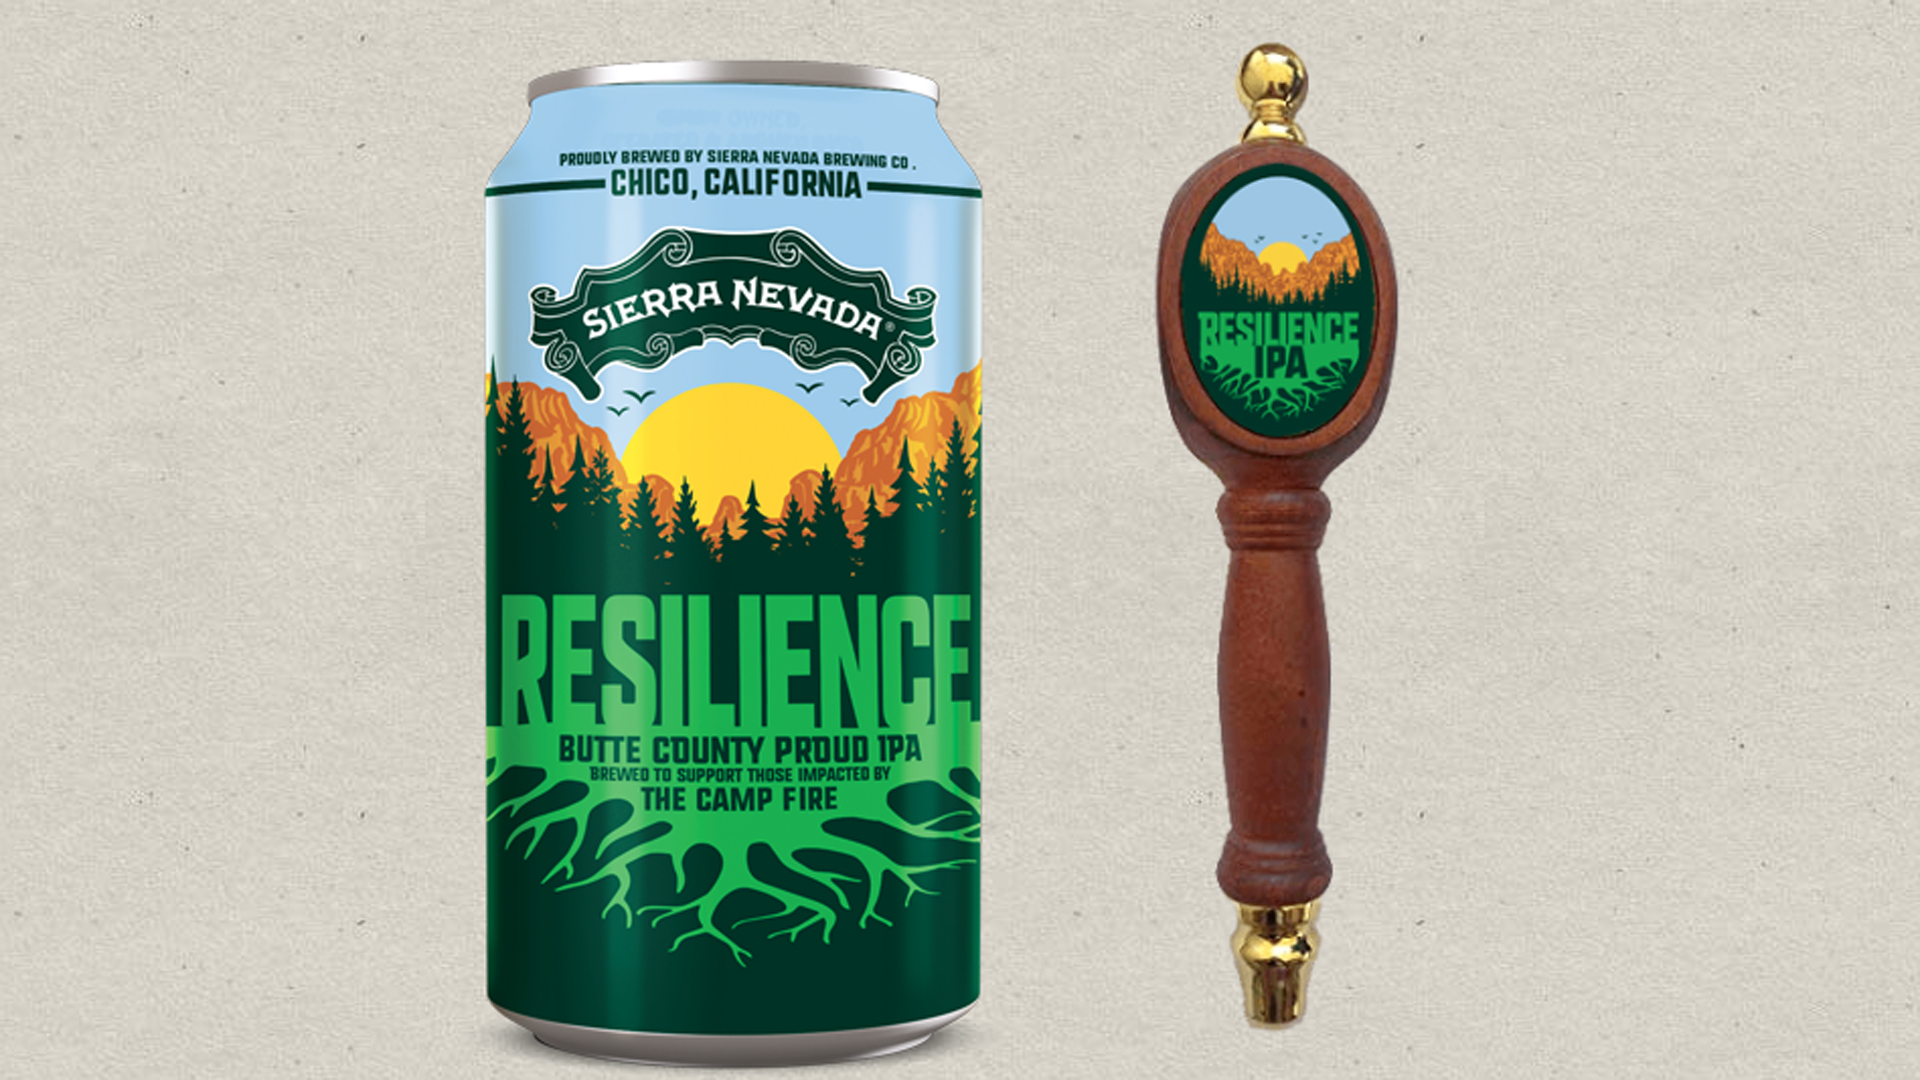 Sierra Nevada's Resilience IPA, which raises funds for victims of the Camp Fire in Butte County, is seen here on a photo from the brewery's website.